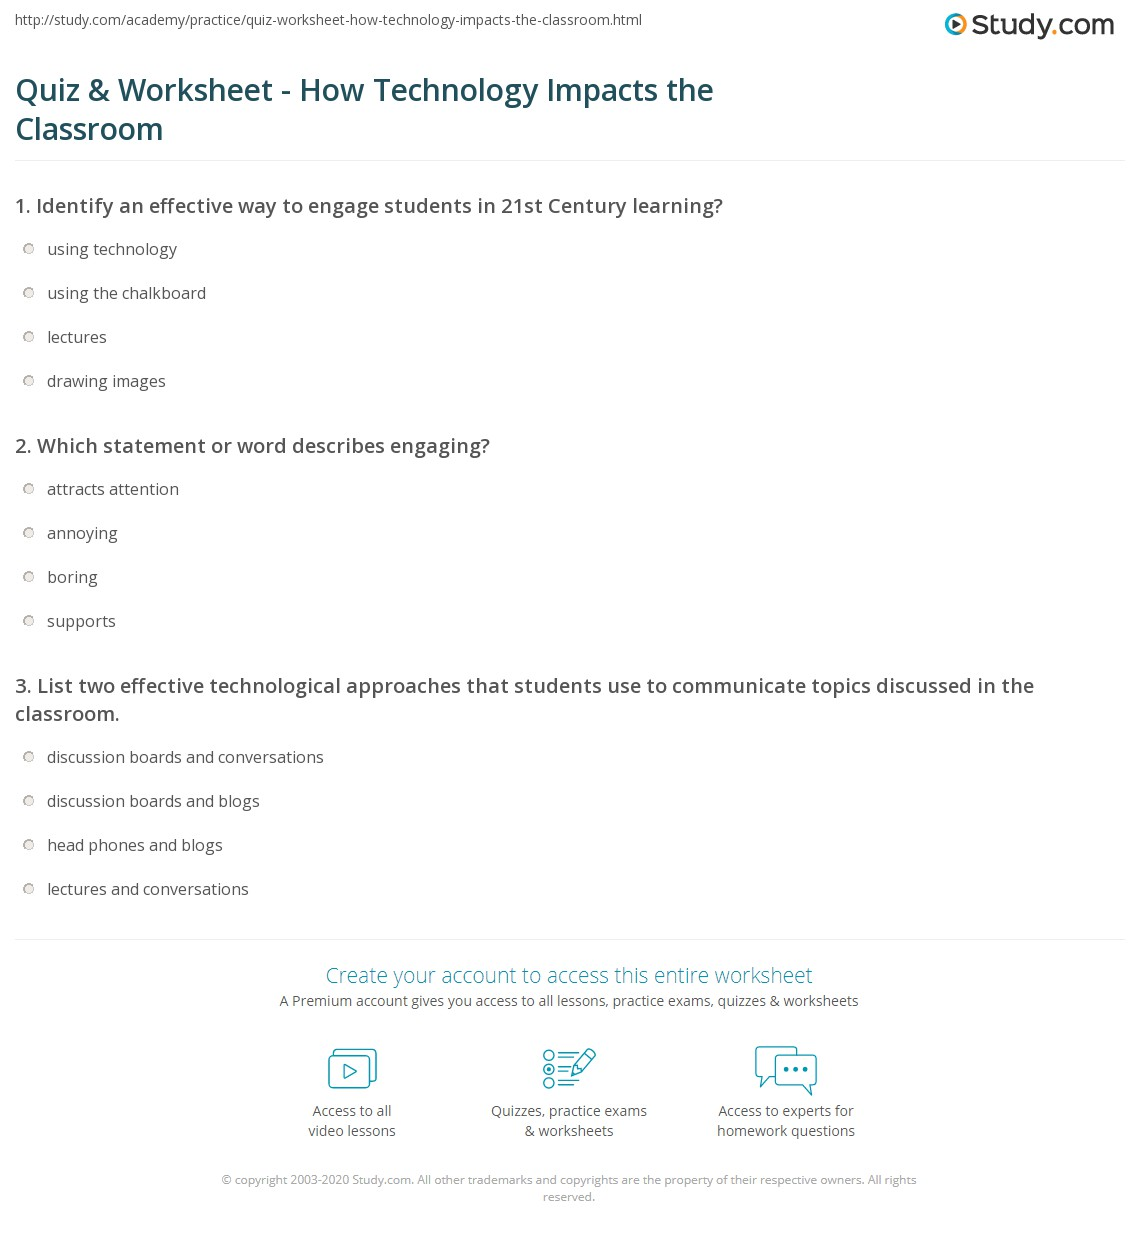 worksheet Classroom Worksheets quiz worksheet how technology impacts the classroom study com print effects of in worksheet